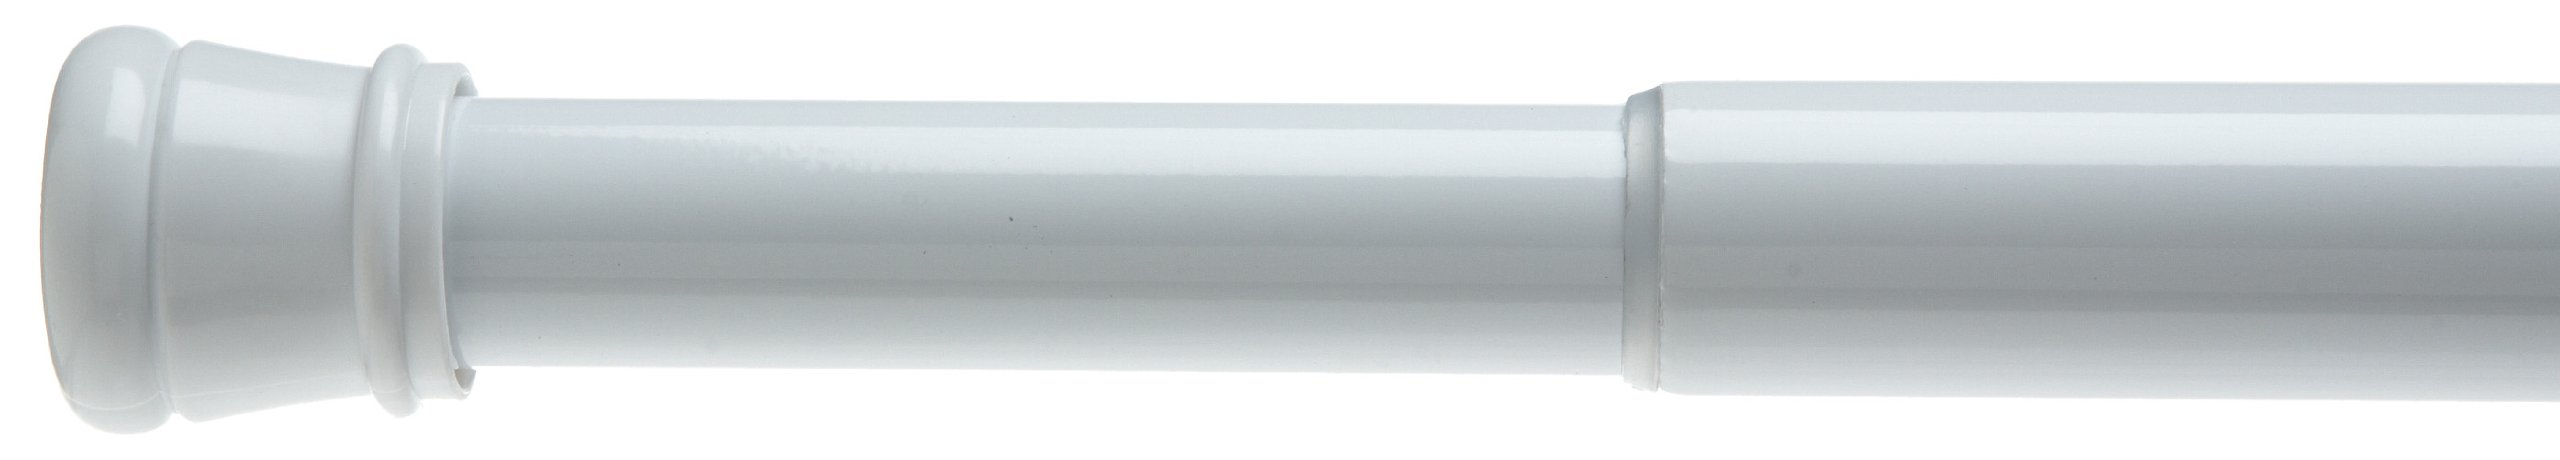 Carnation Home Fashions Adjustable 41-to-72-Inch Steel Shower Curtain Tension Rod, White